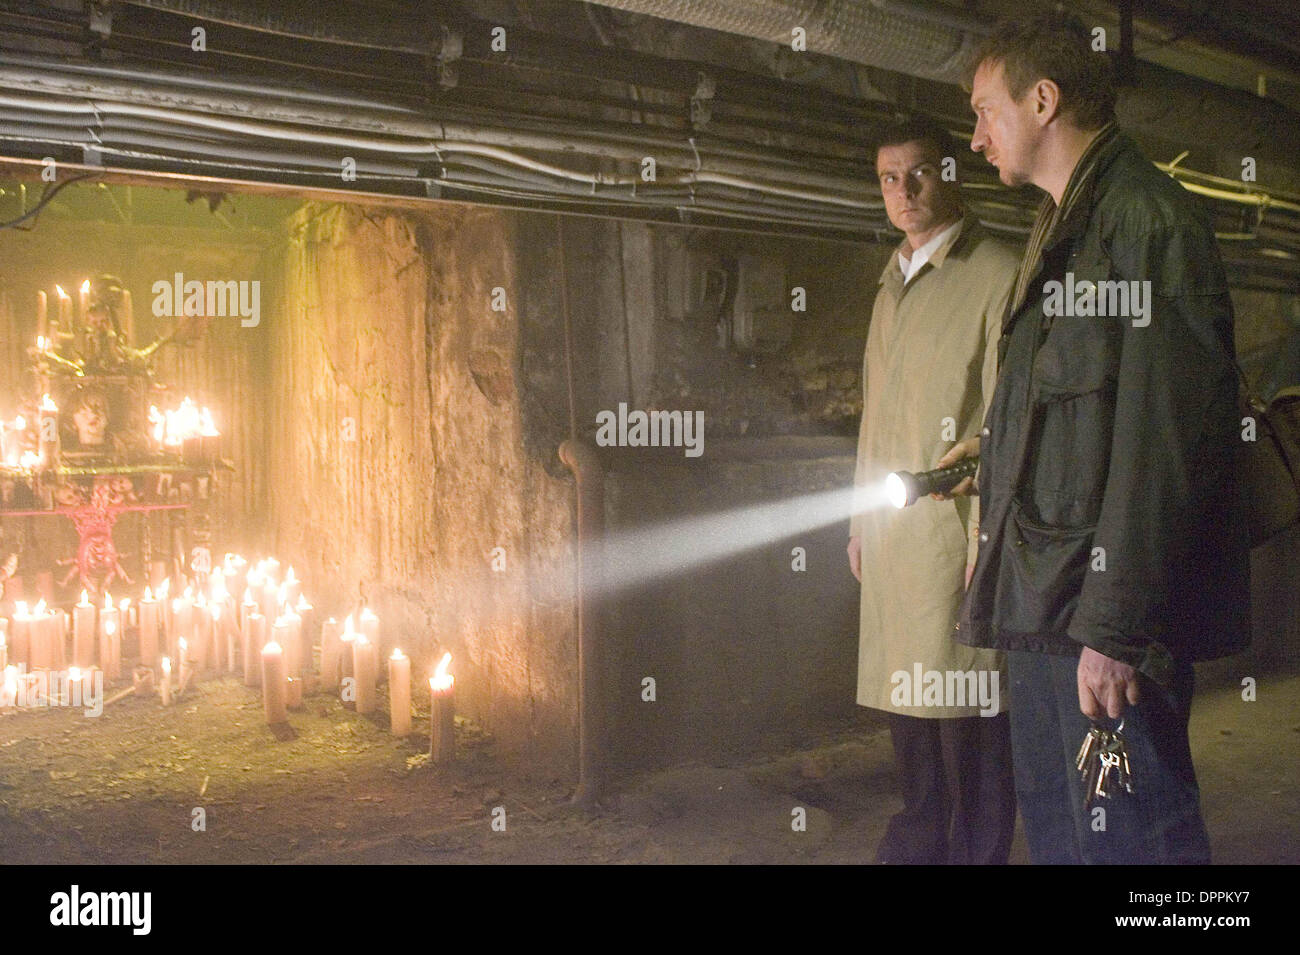 May 25, 2006 - O-190  Thorn (Liev Schreiber) and Jennings (David Thewlis) search for clues to the reasons behind the spate of horrific events occurring around them.          .K48087ES.TV-FILM STILL. SUPPLIED BY    THE OMEN(Credit Image: © Globe Photos/ZUMAPRESS.com) - Stock Image